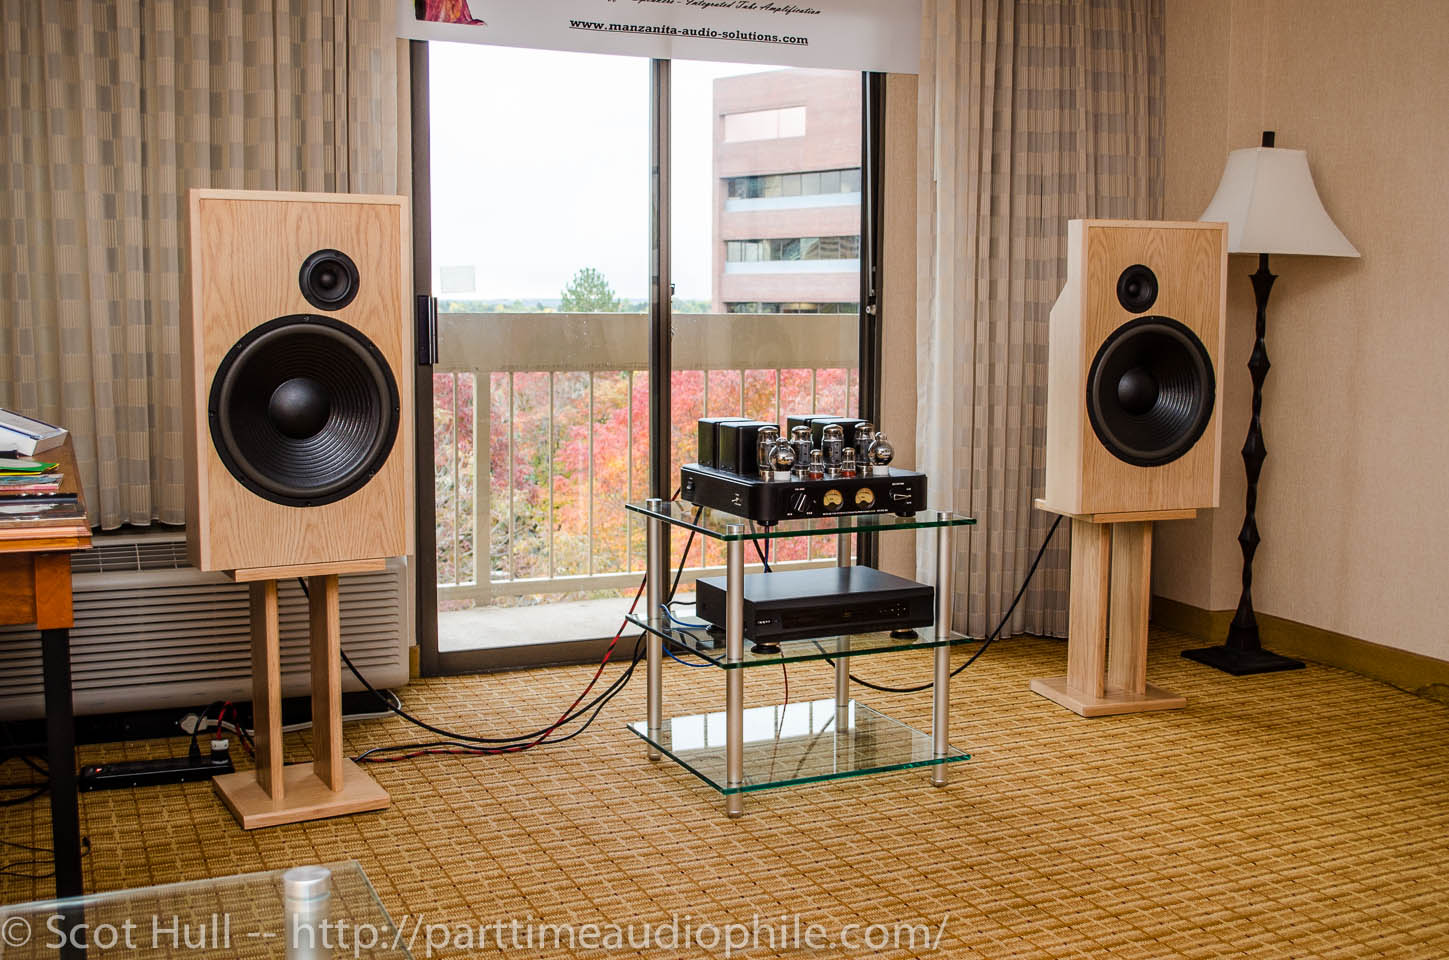 Part Time Audiophile Rmaf 2013 Manzanita Audio Solutions